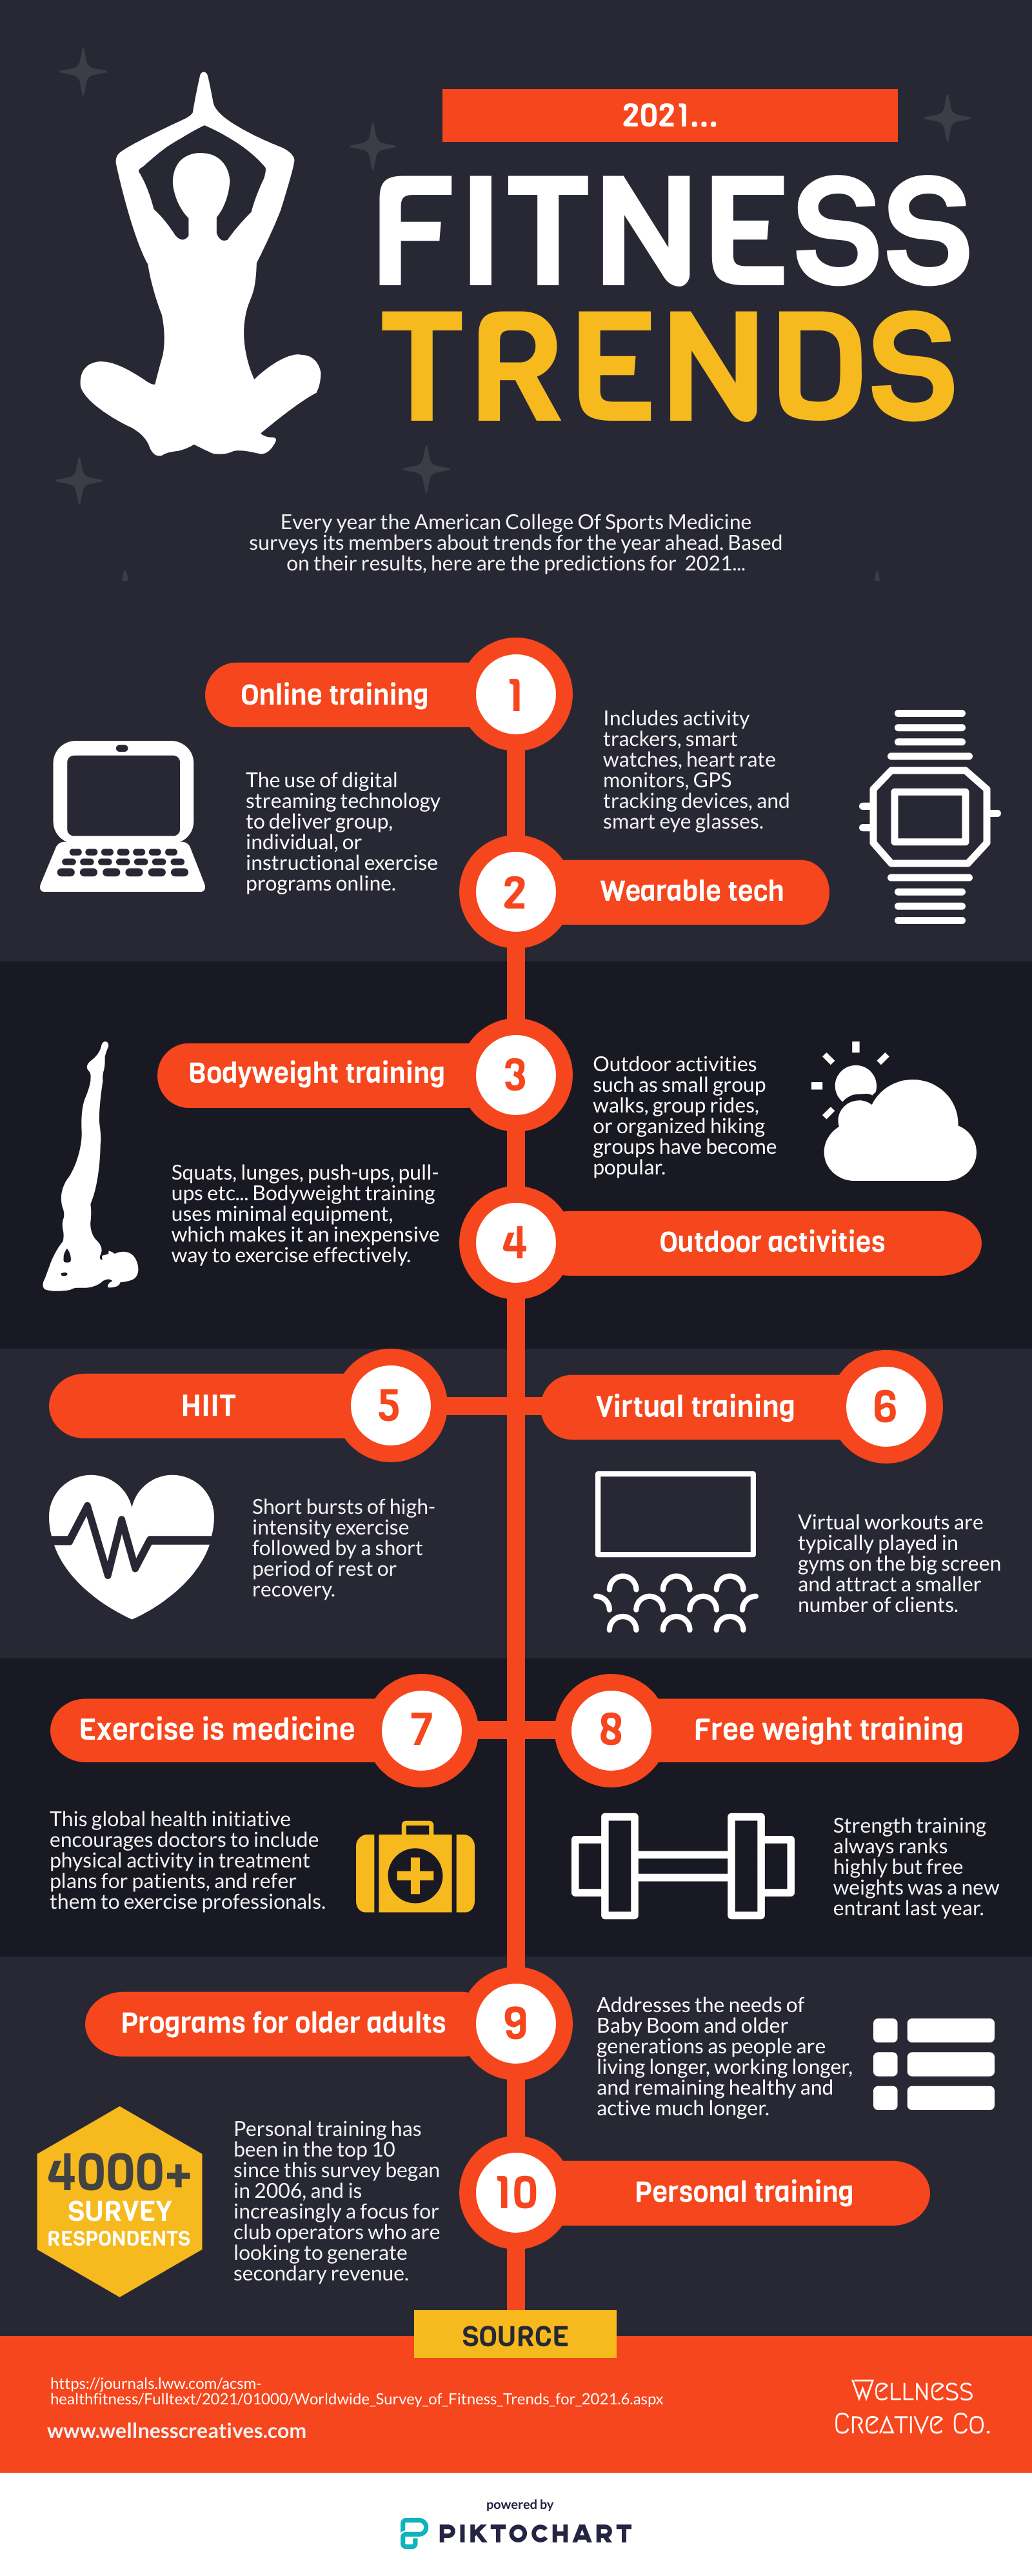 Fitness Trends 2021 Infographic